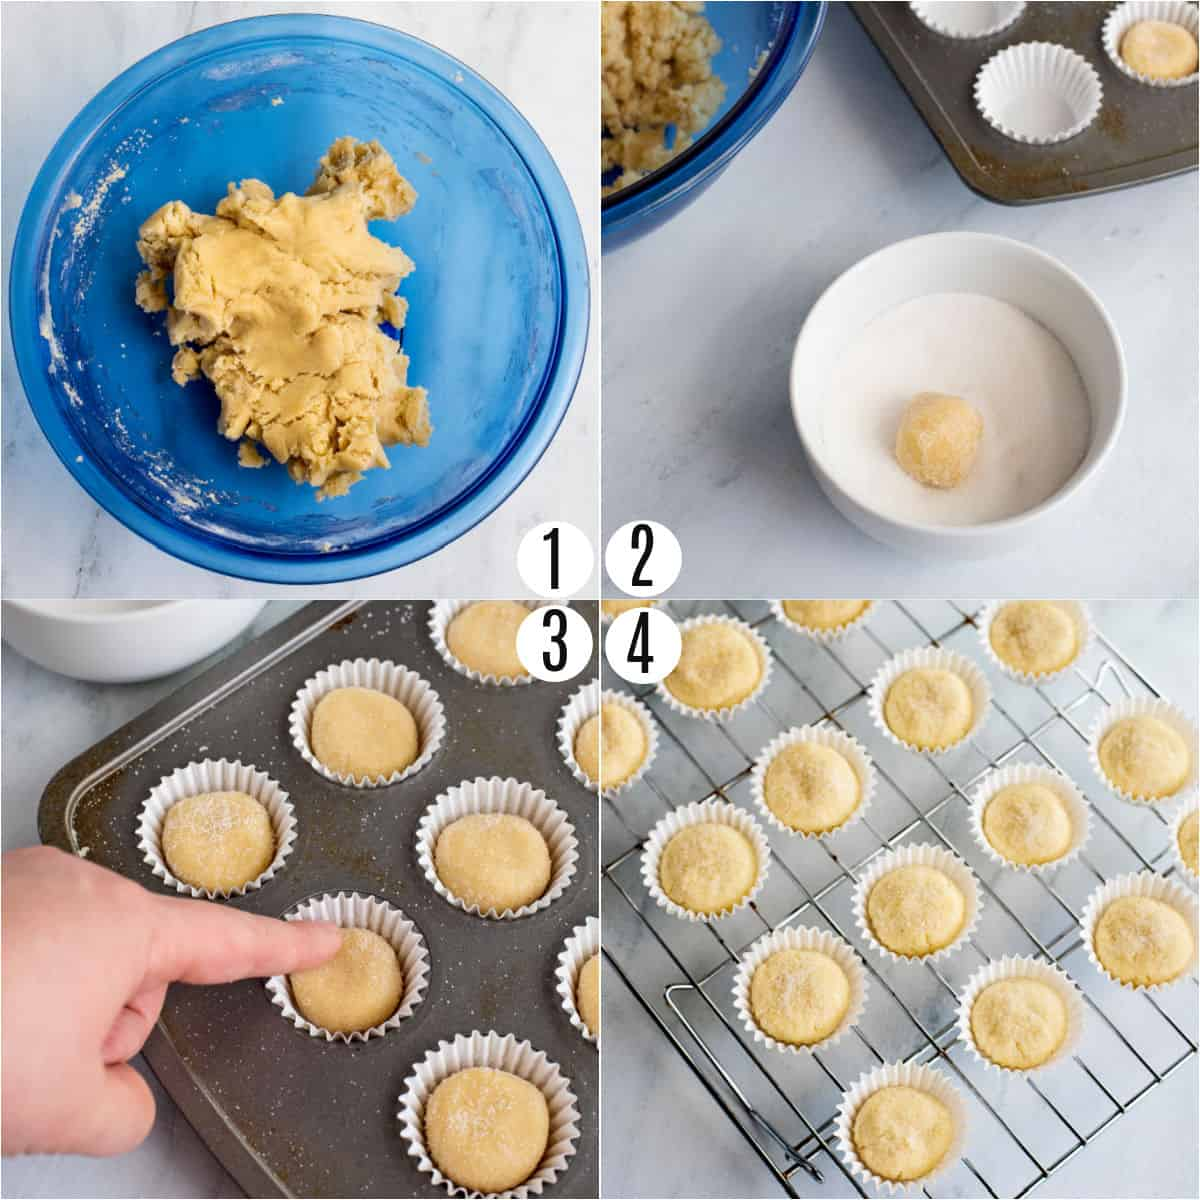 Step by step photos showing how to make frosted sugar cookie bites.